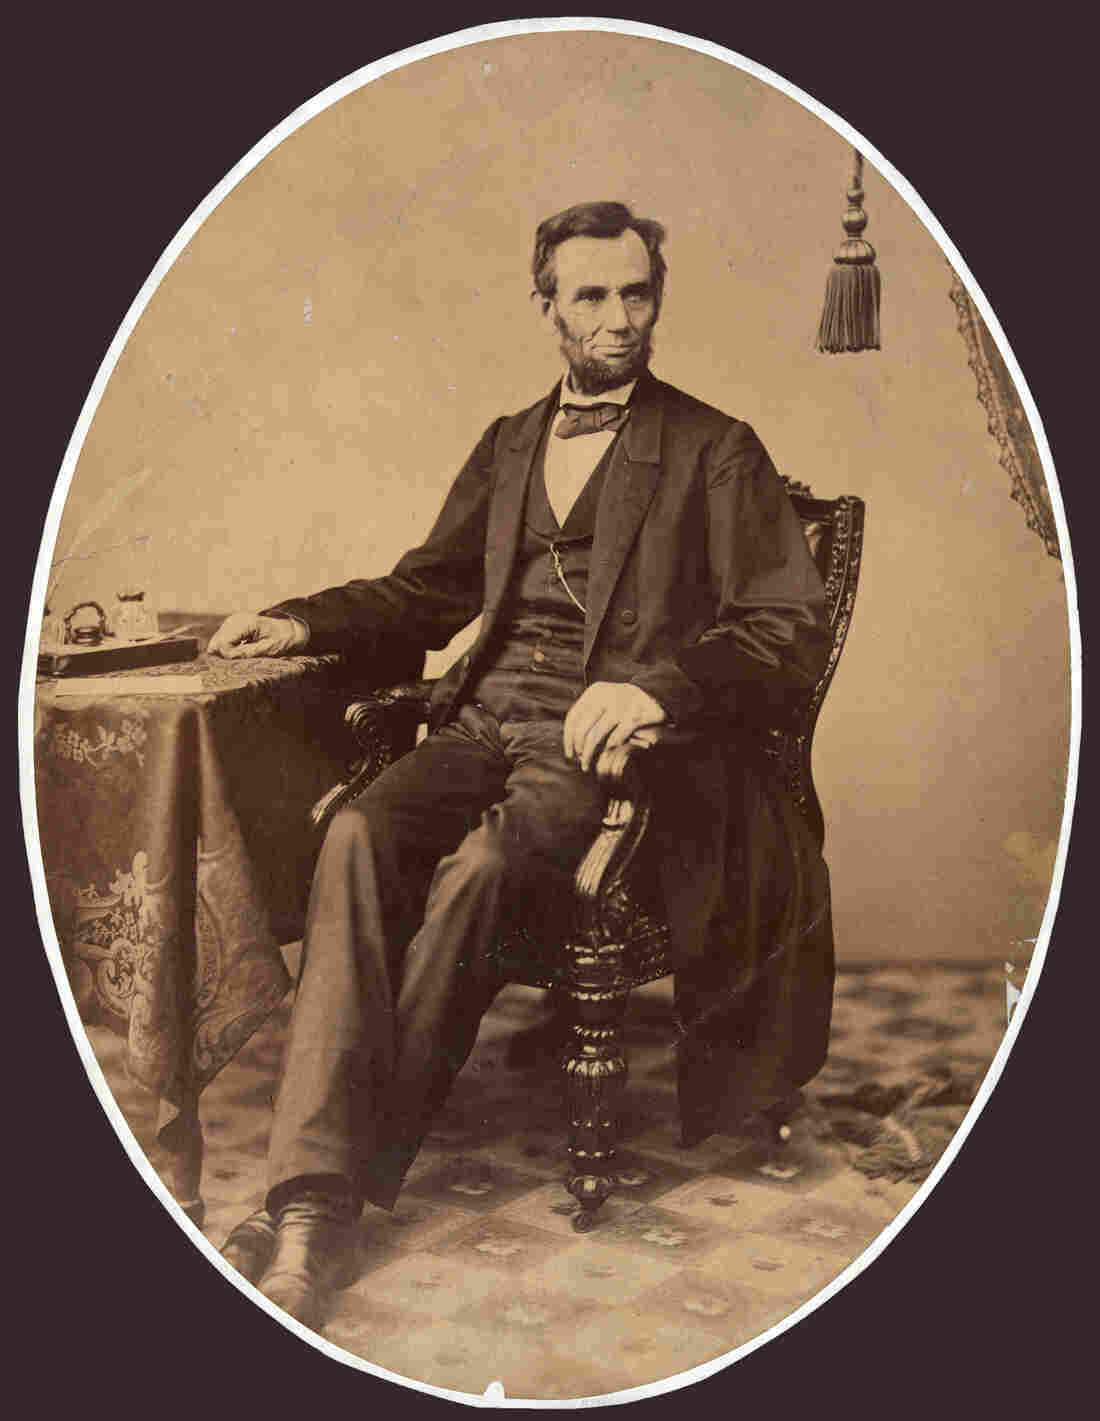 A little more than a week before he gave the Gettysbug Address, President Lincoln sat for this portrait.